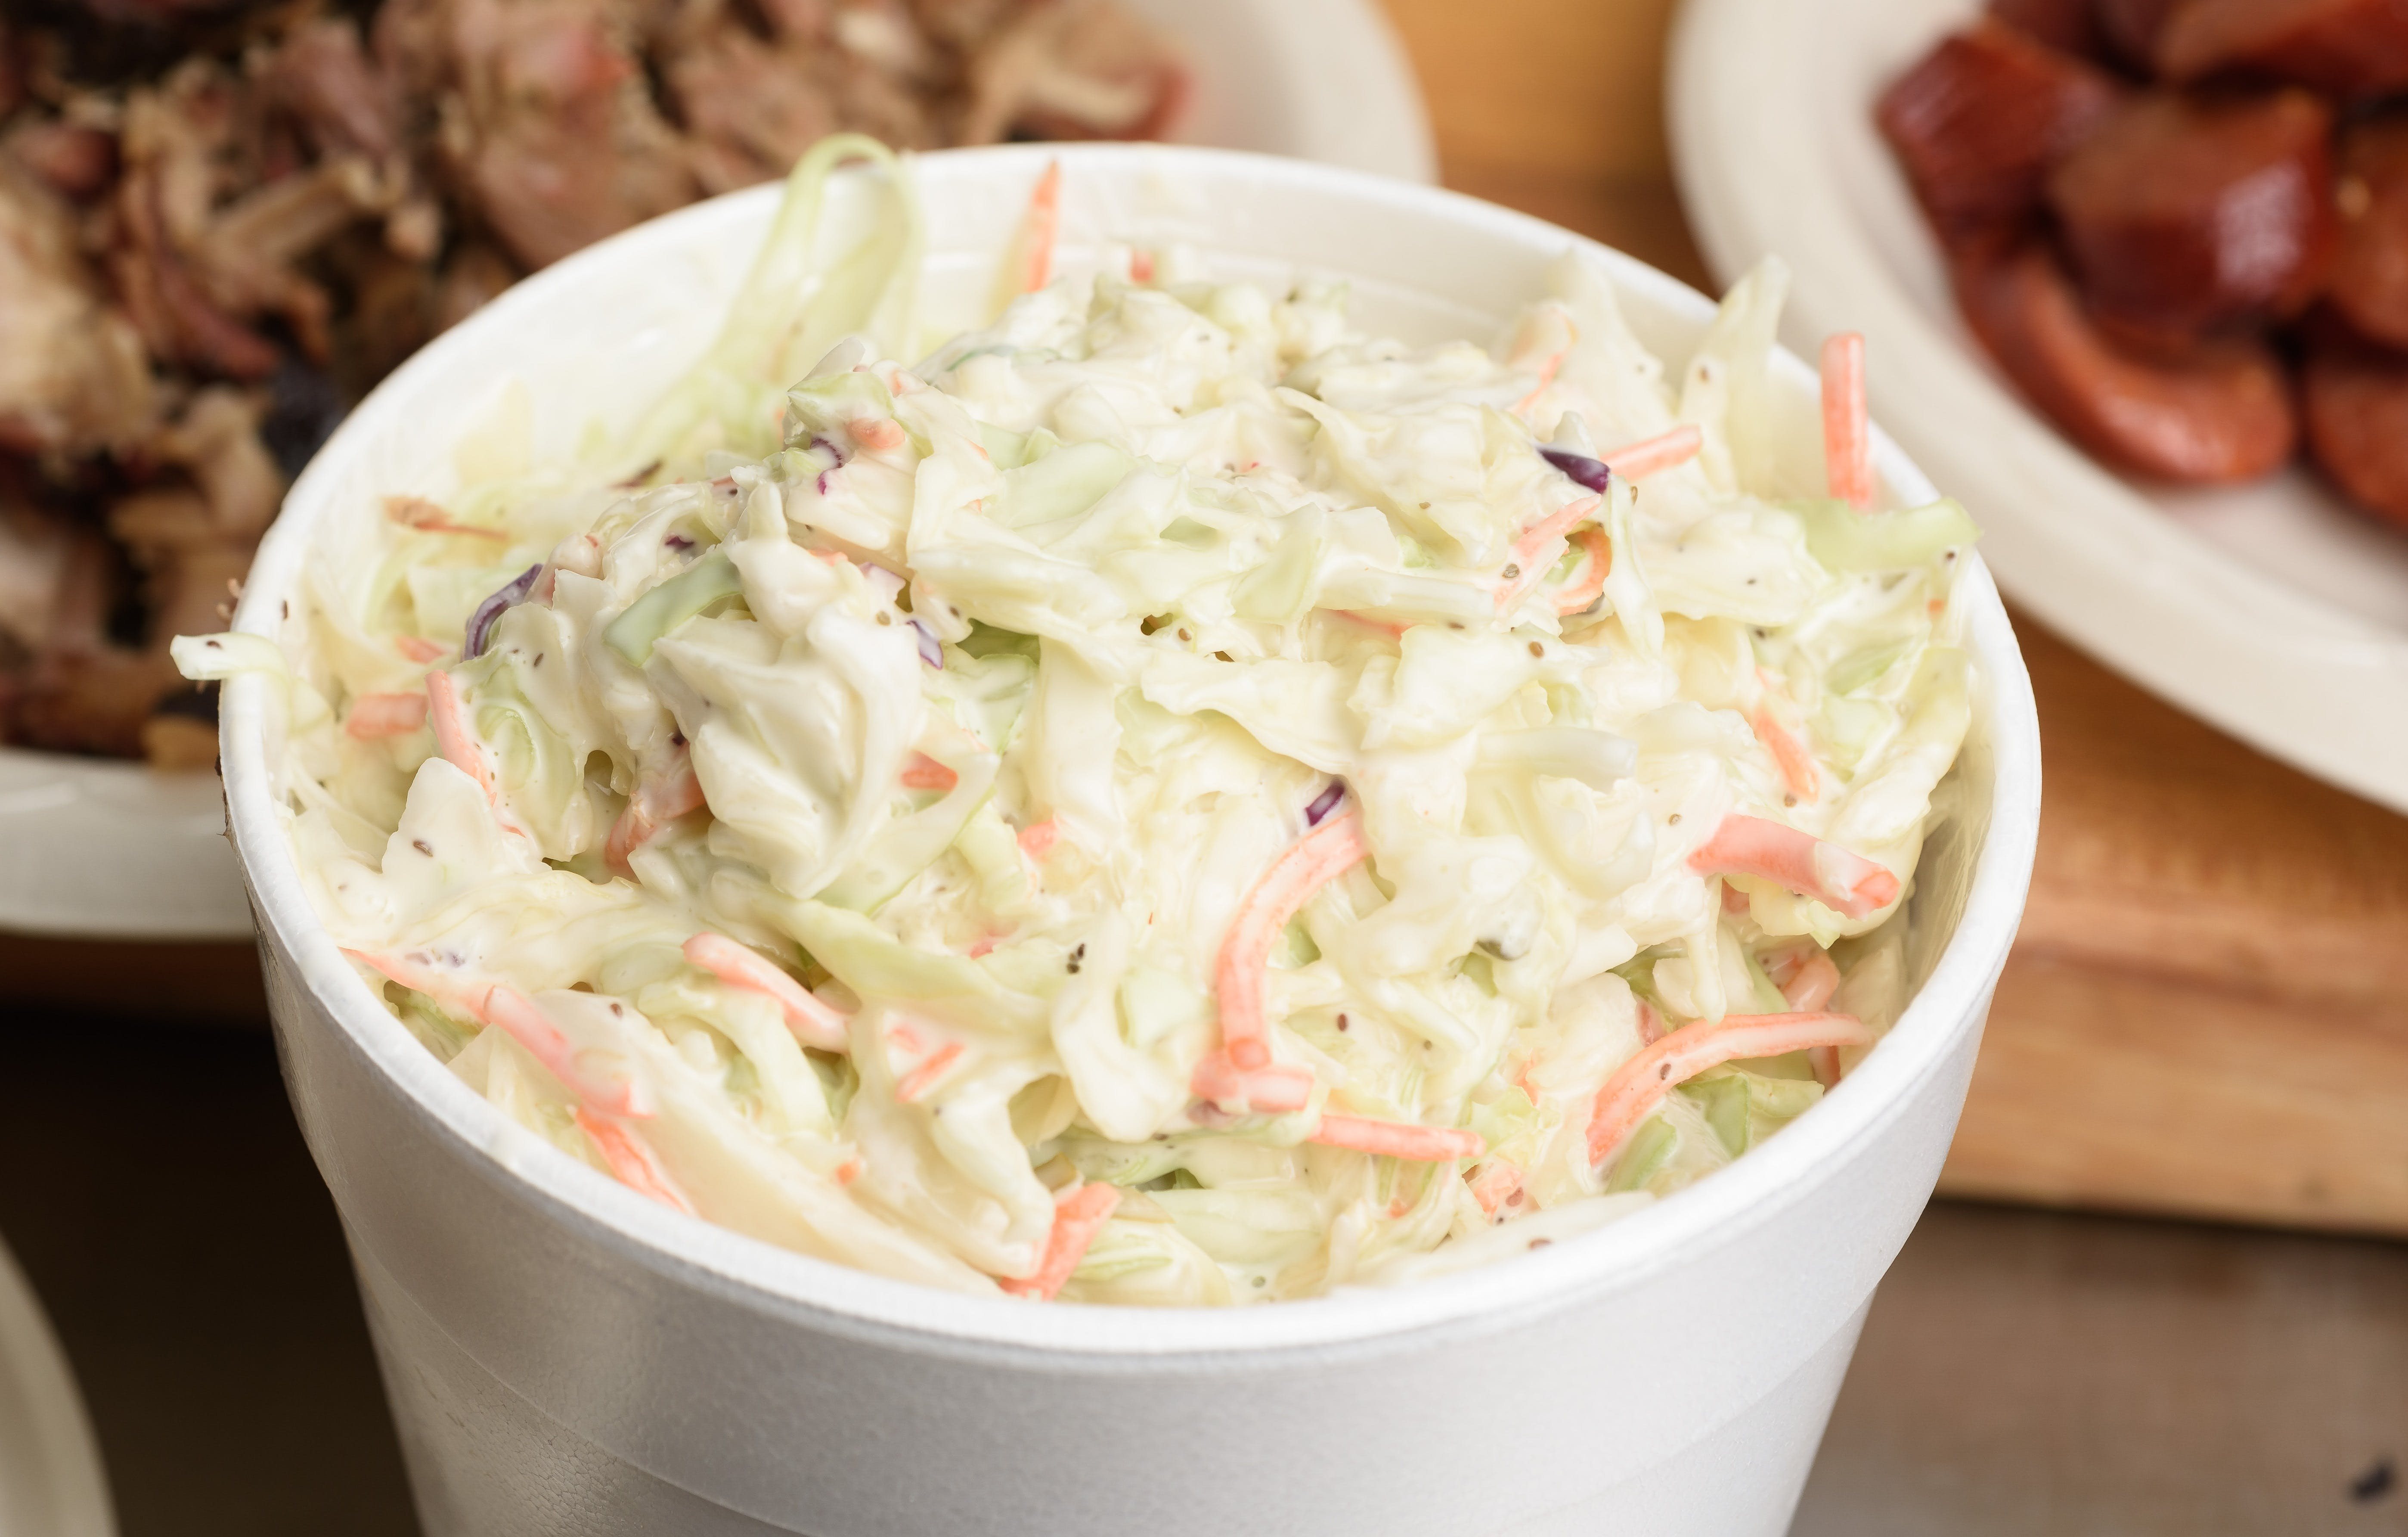 Cole Slaw from Hog Wild Pit BBQ & Catering in Lawrence, KS